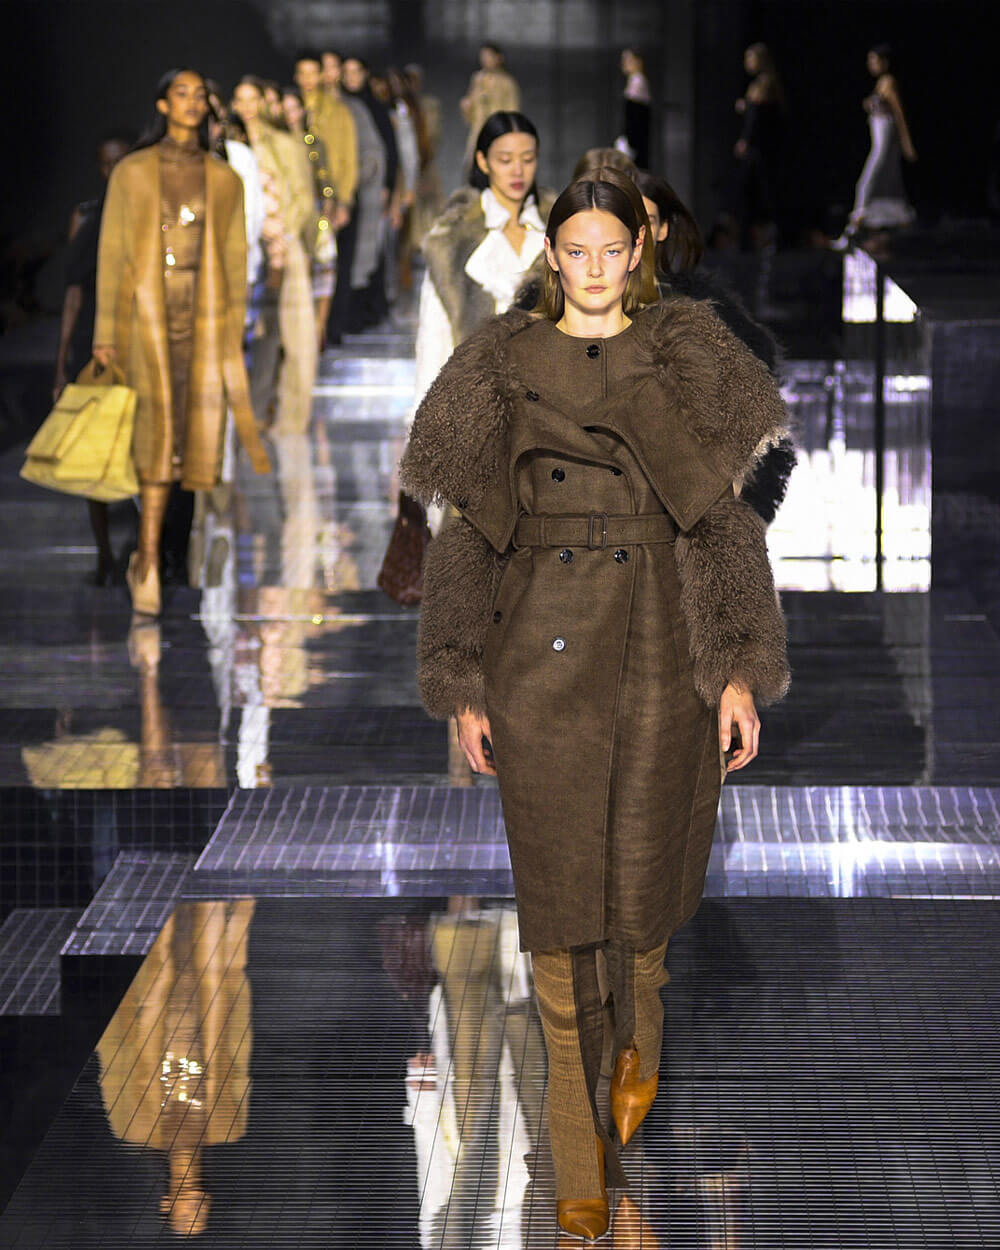 Burberry carbon neutral fashion show 2020